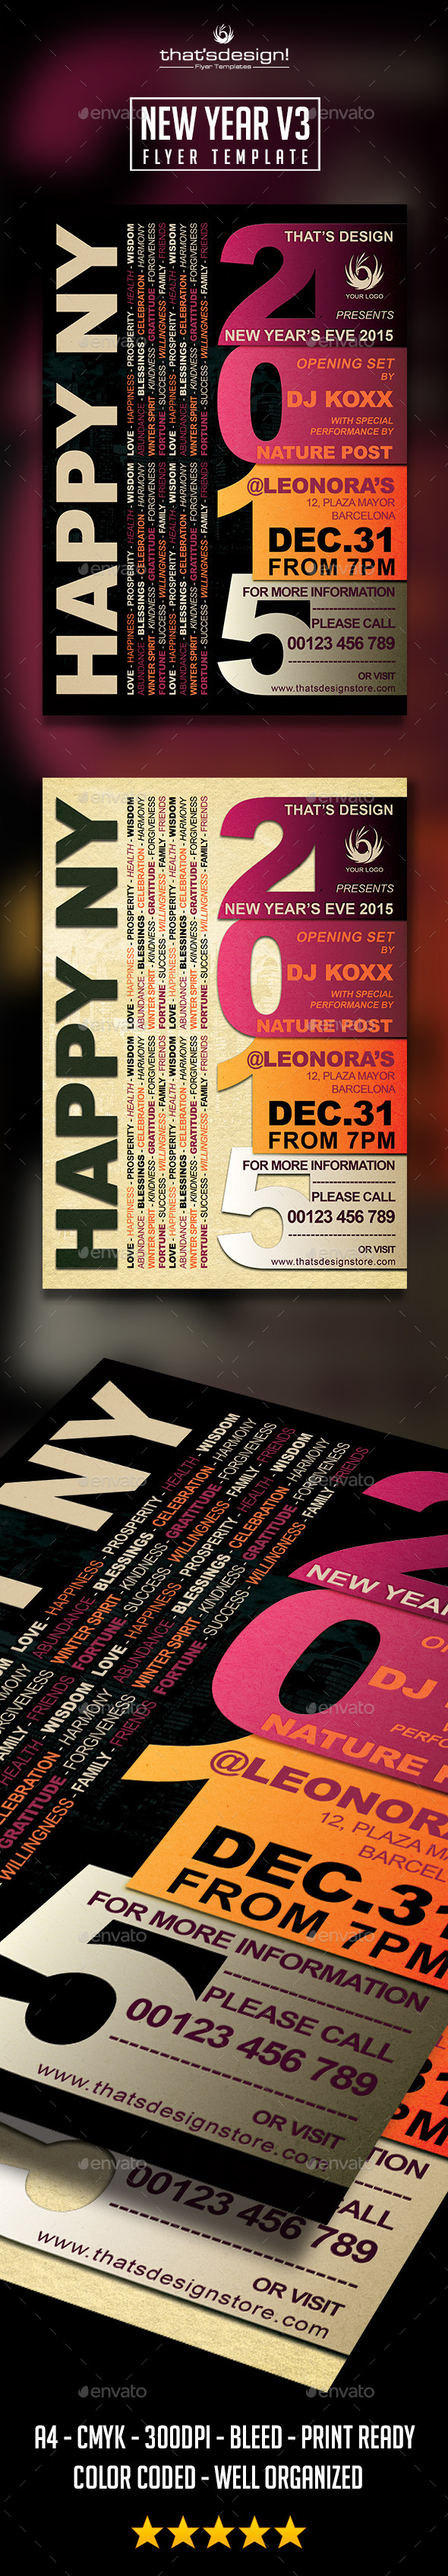 GraphicRiver New Year Flyer Template V3 9656089